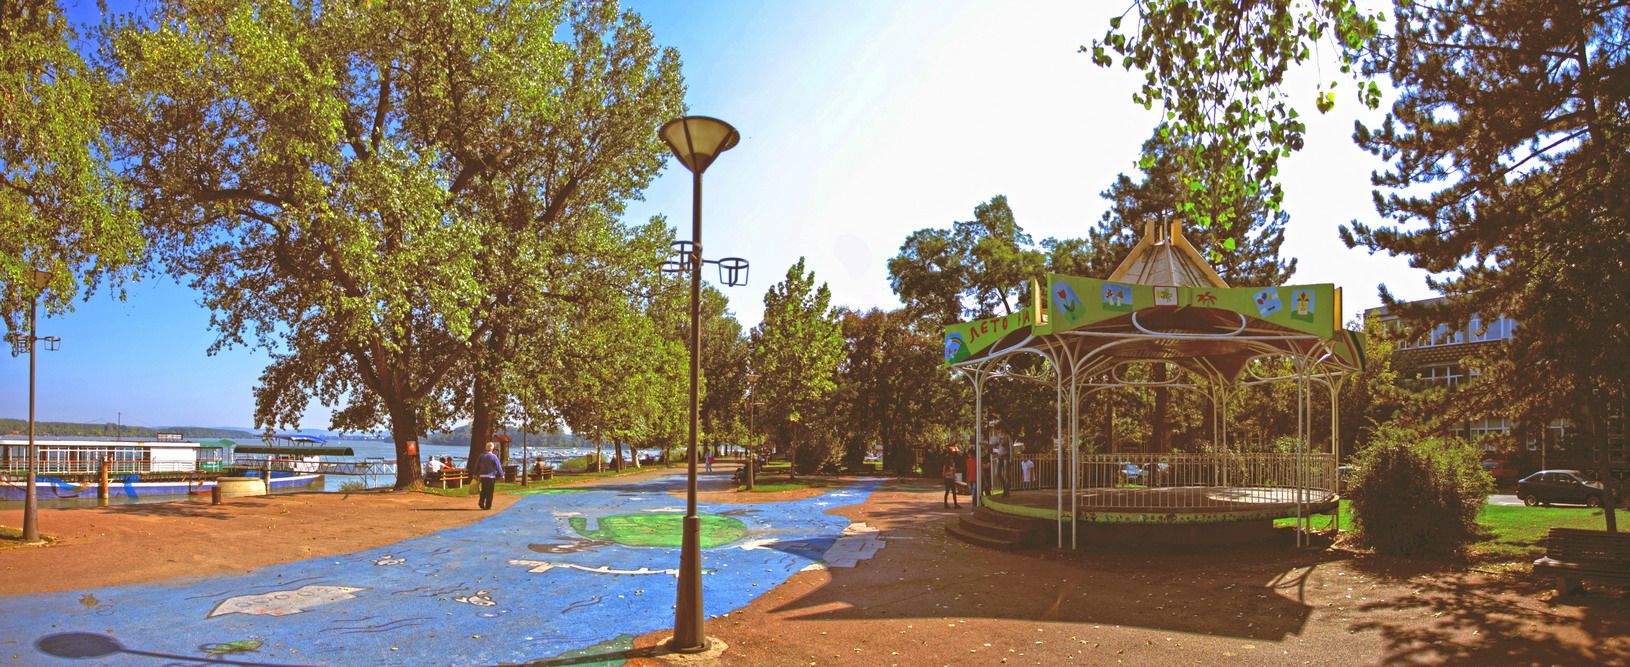 most popular parks in belgrade zemunski kej